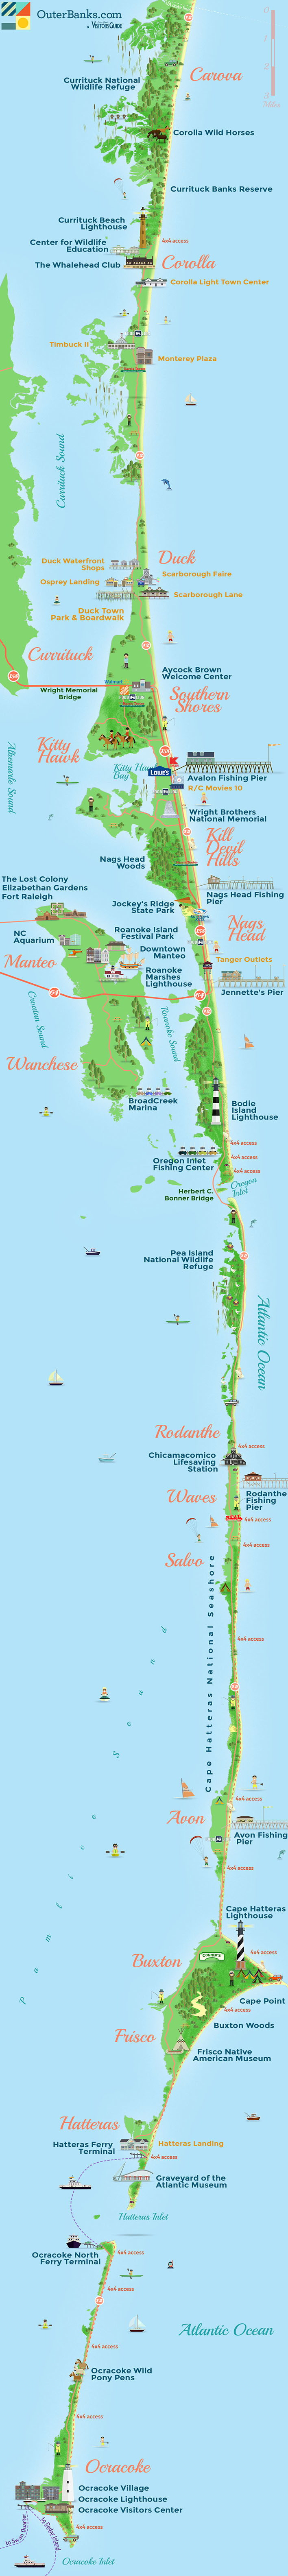 hight resolution of outer banks map